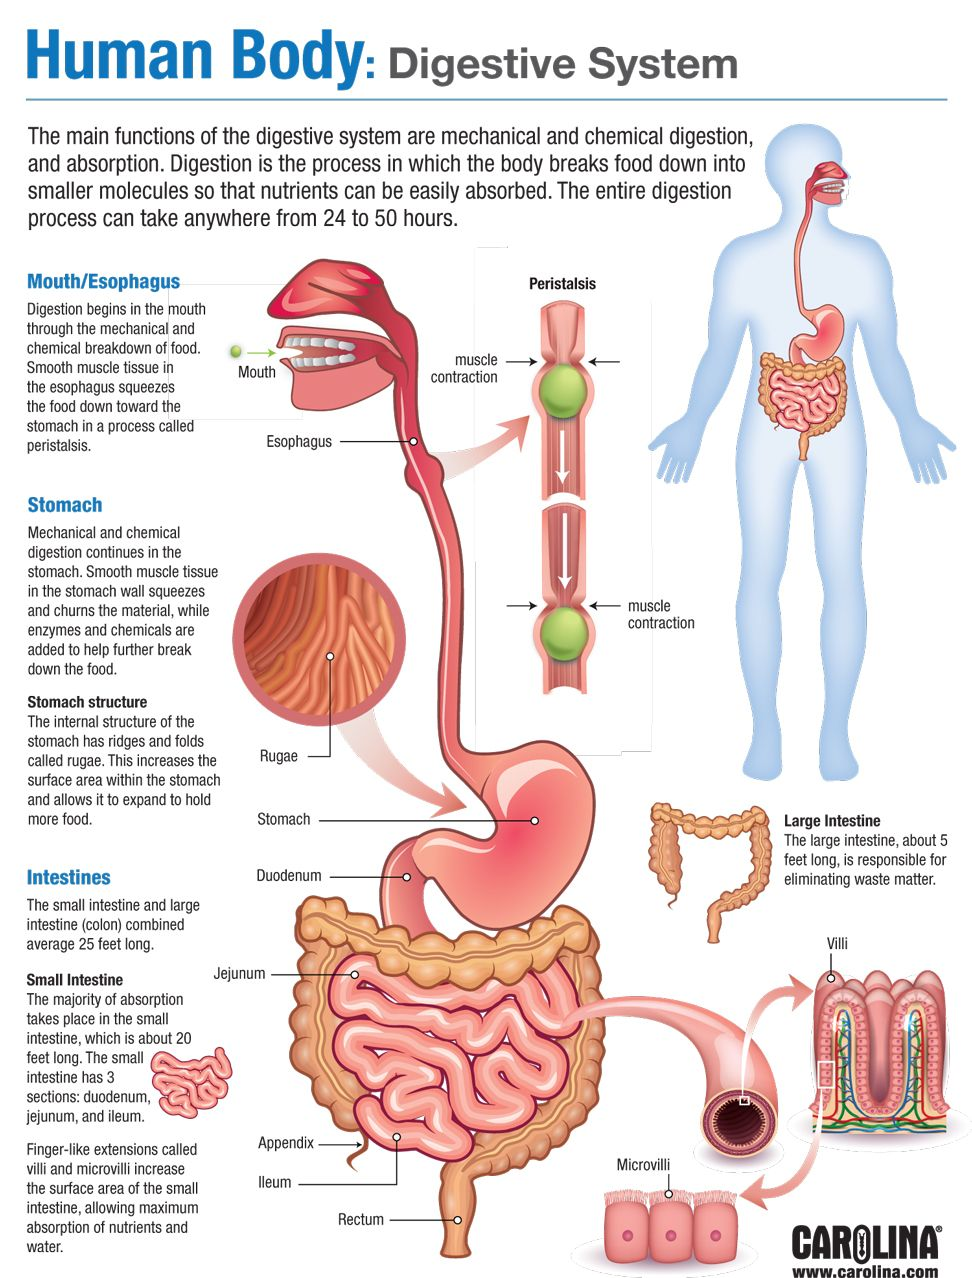 Human body digestive system carolina infographic human body endocrine system ccuart Images